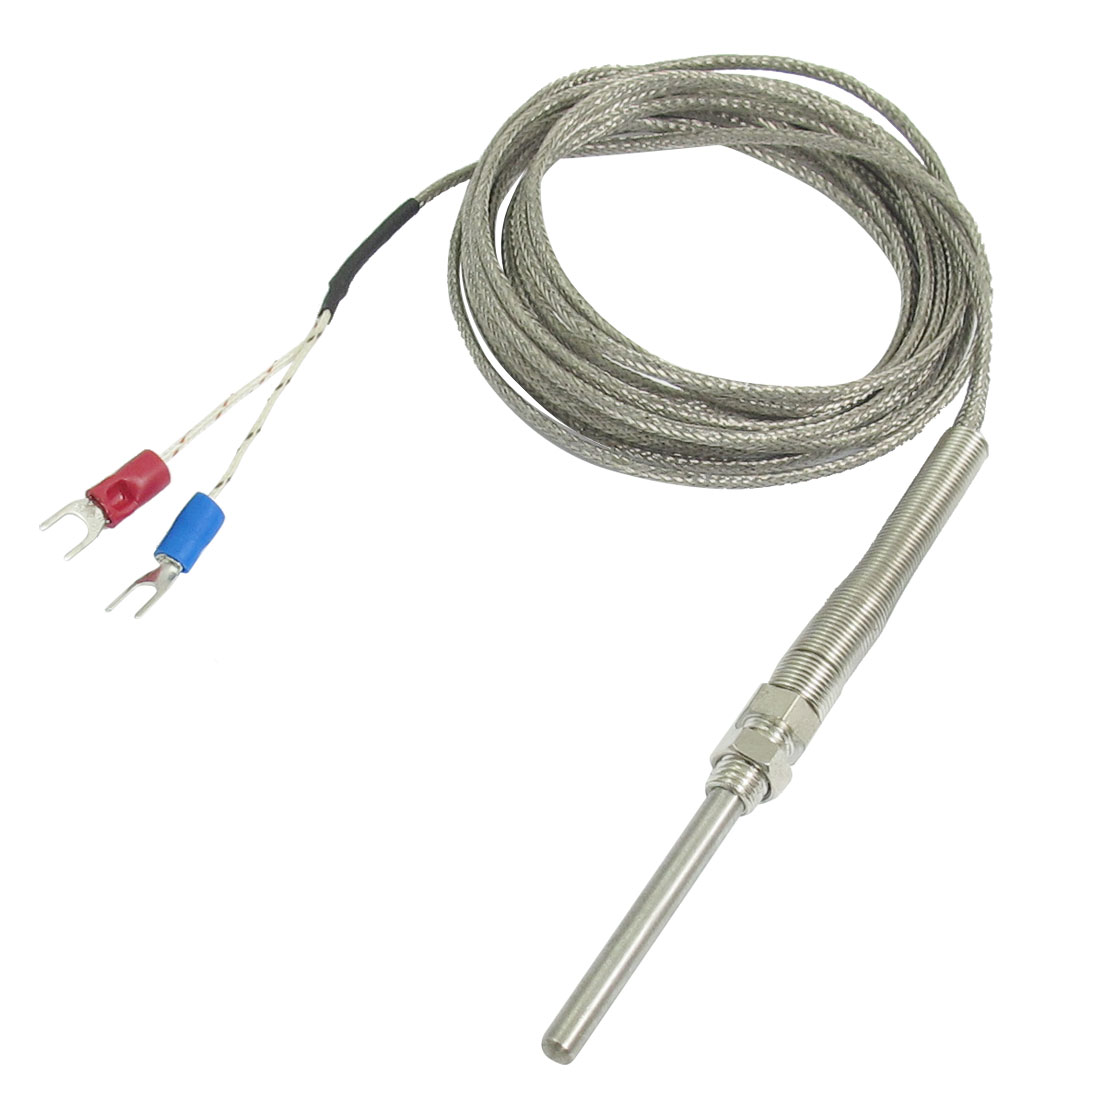 K Type 50x5mm 800C Probe Thermocouple Temperature Sensor Cable 9.8ft 3 Meters